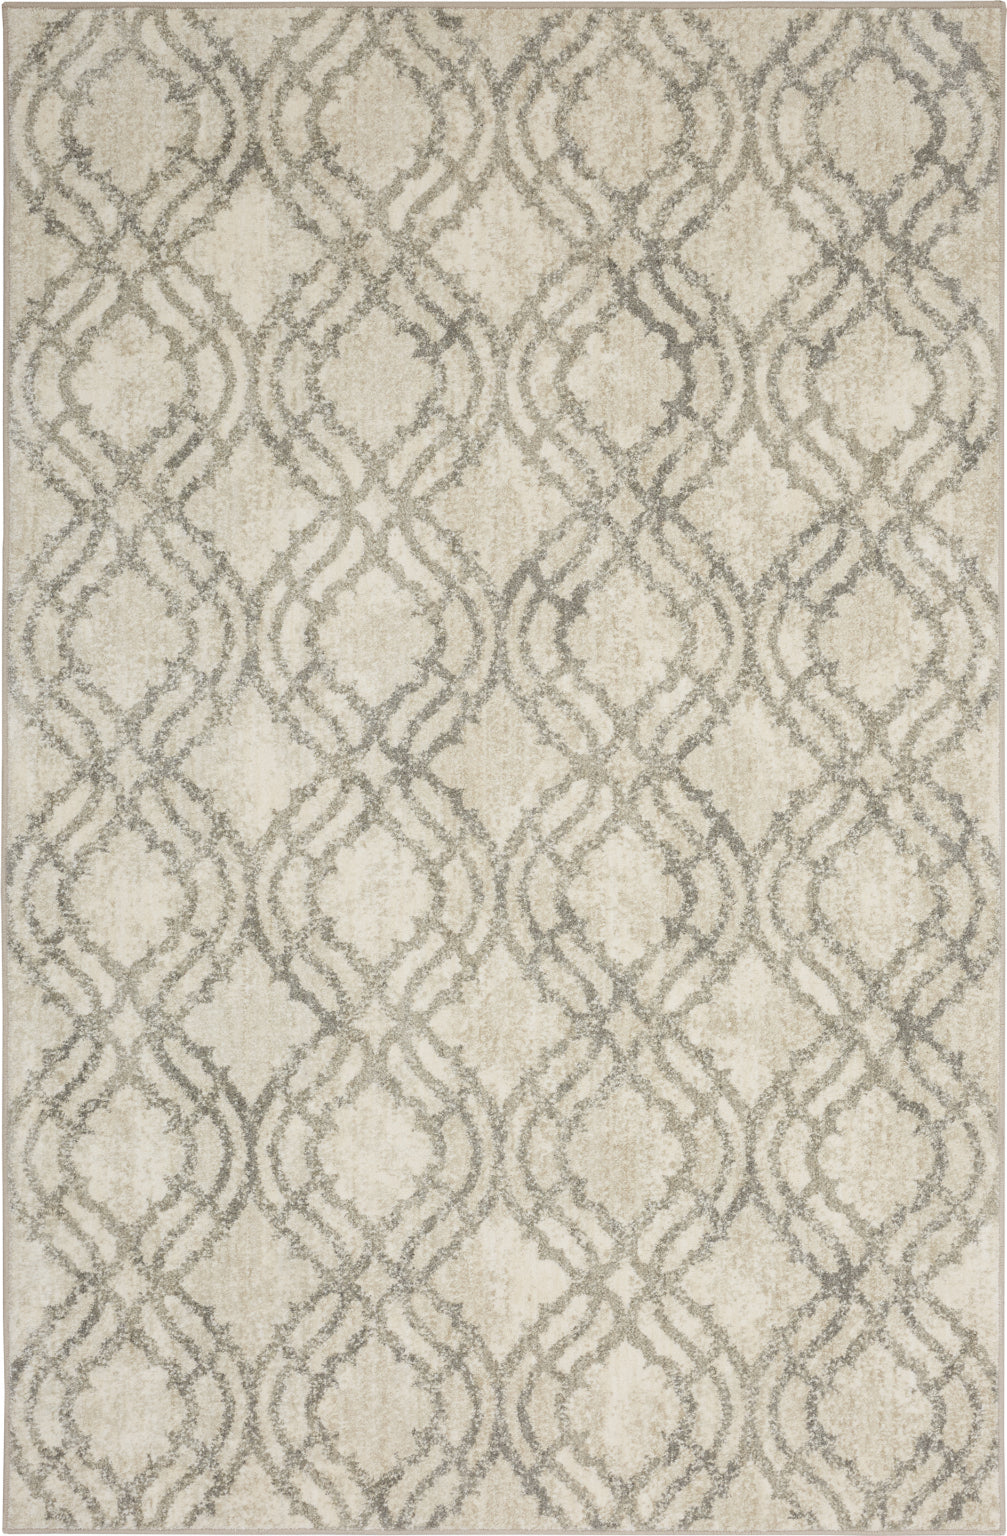 Karastan Euphoria Potterton Natural Area Rug by Lattice main image